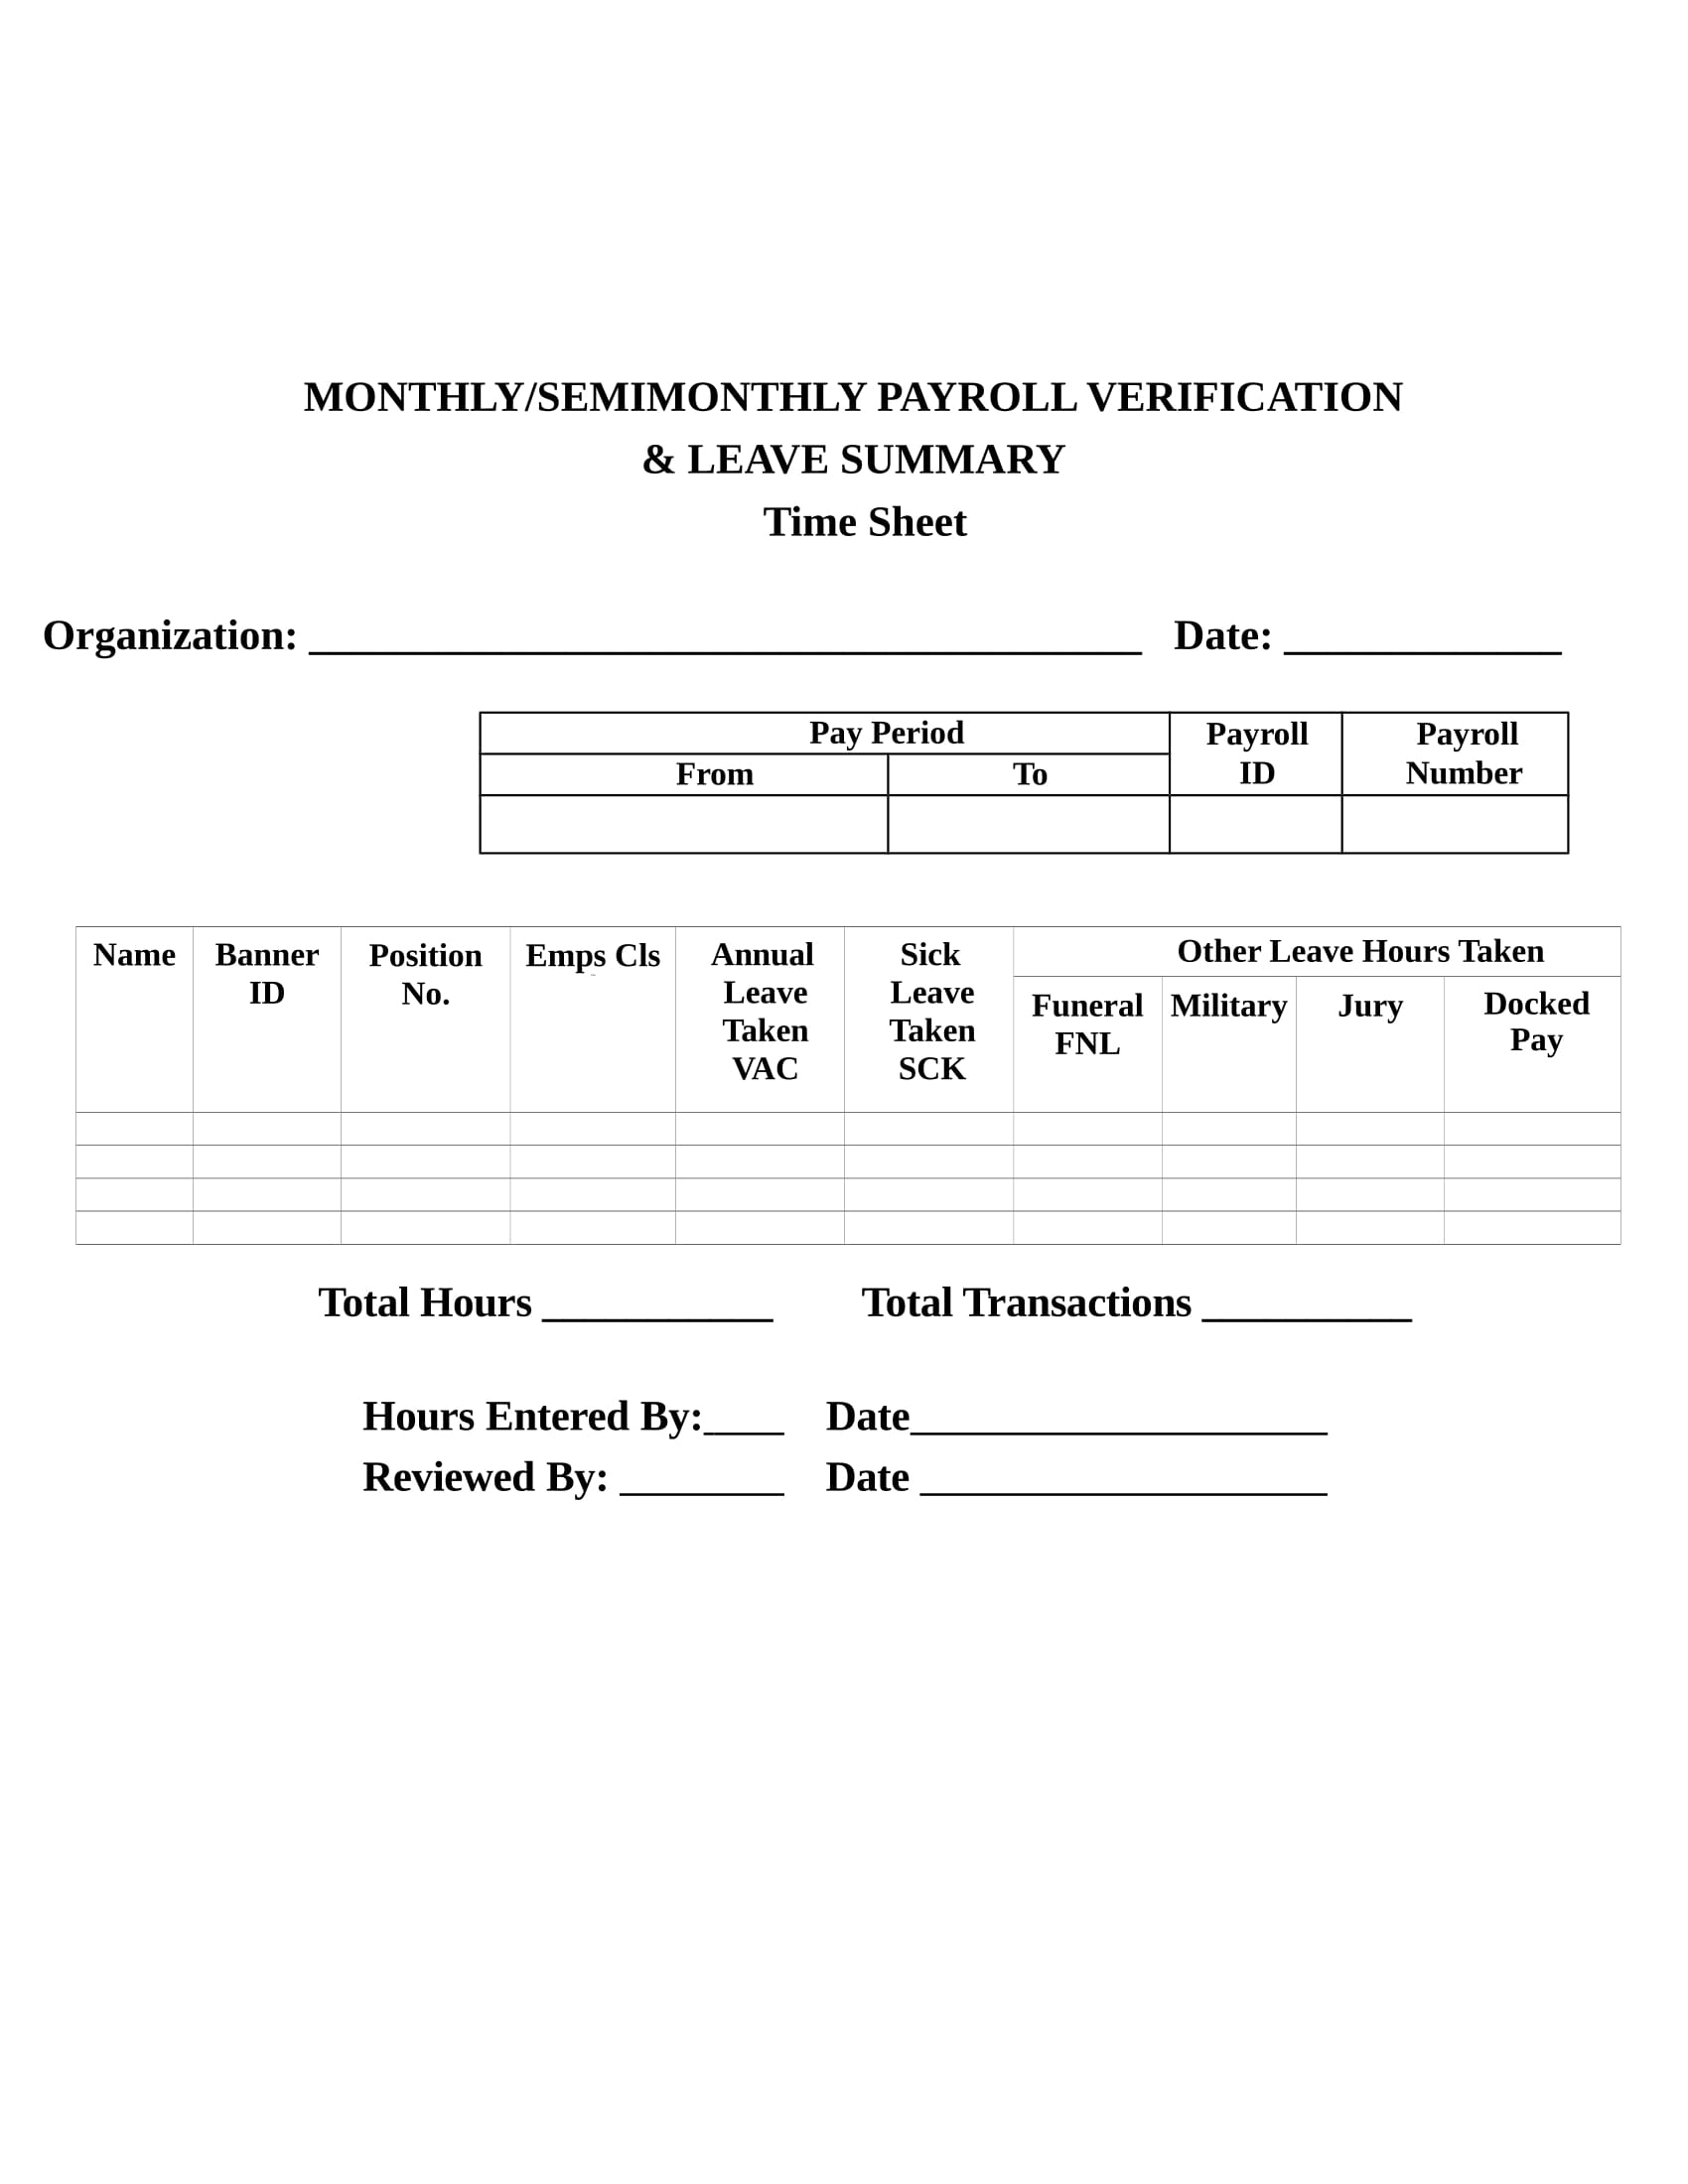 monthly payroll verification form 1